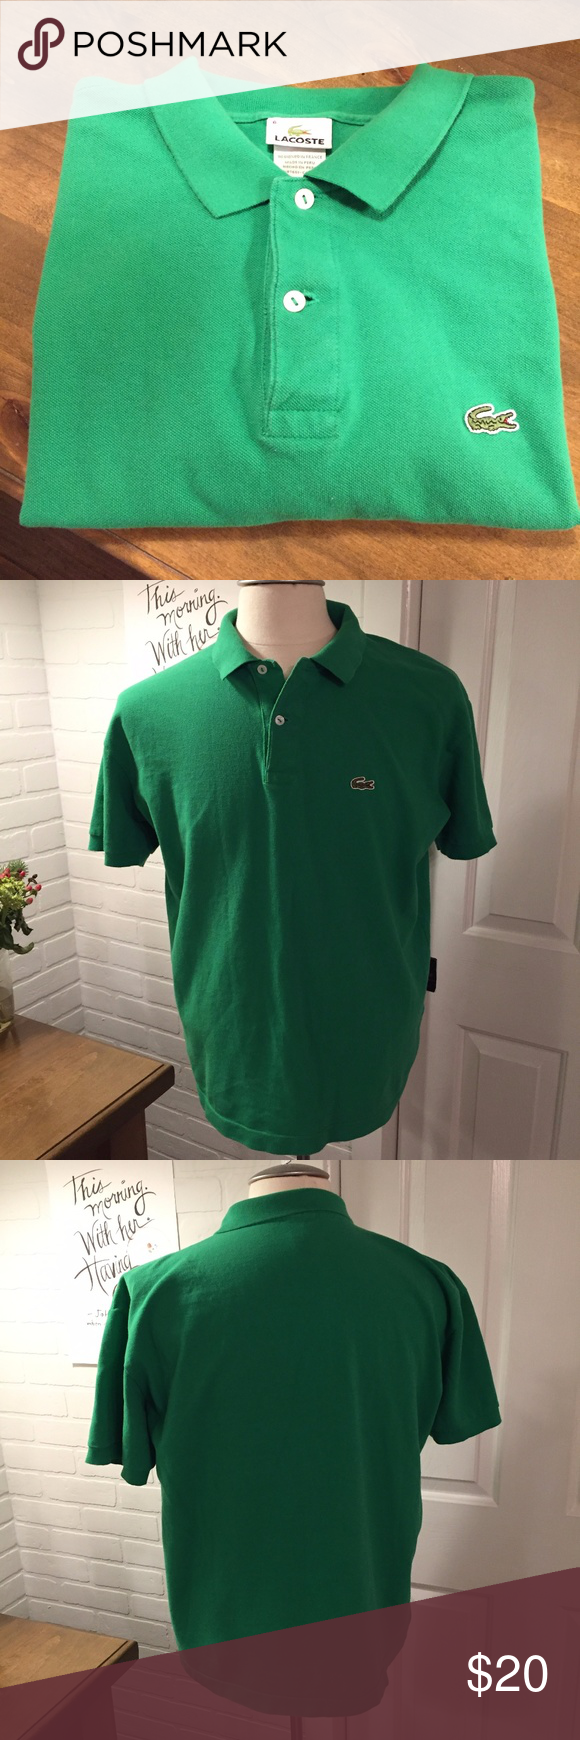 Lacoste Polo Shirt Size 6